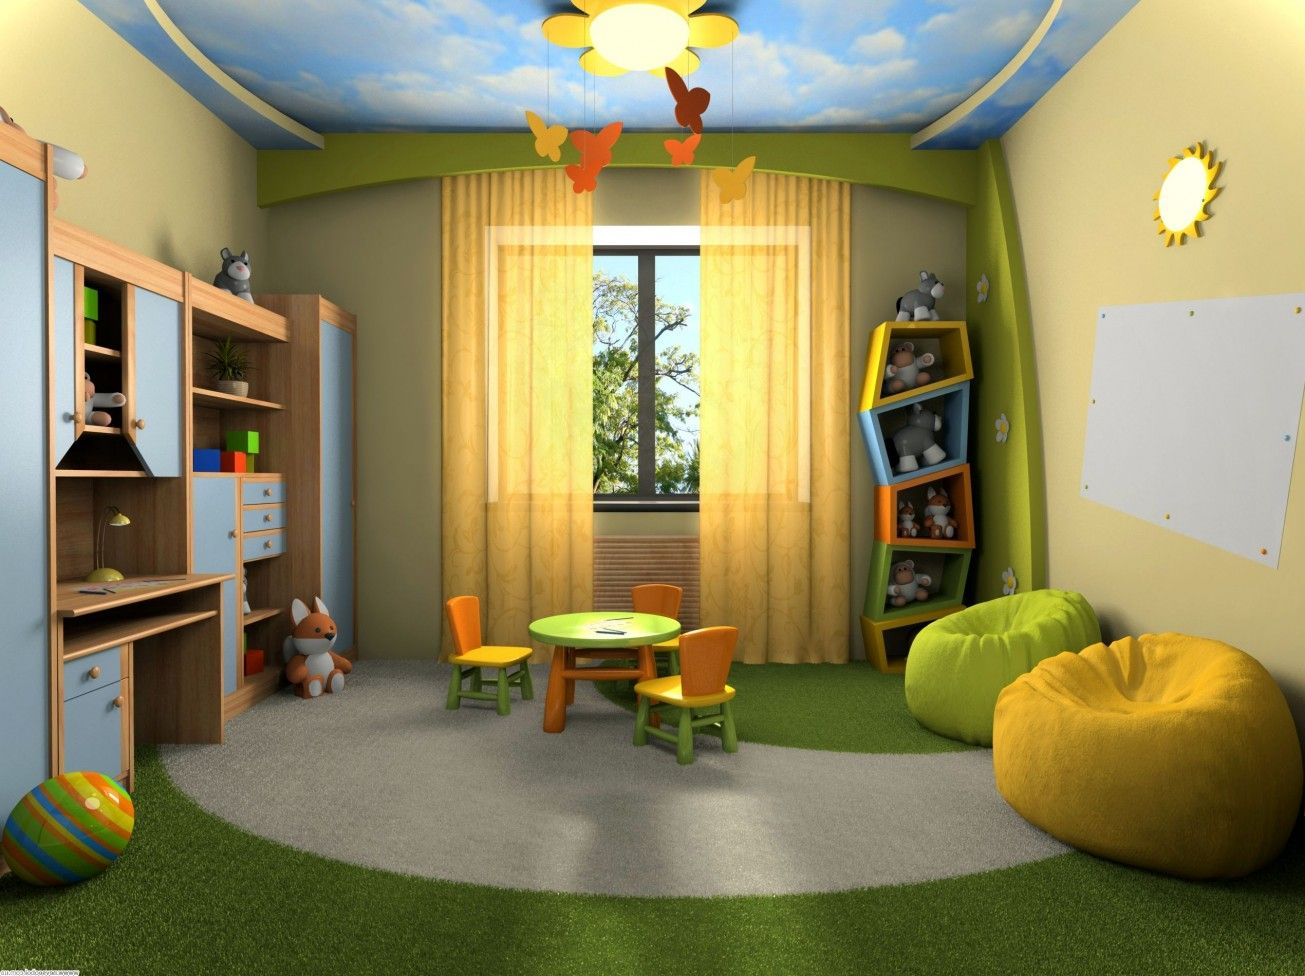 Best Boy S Room Images On Pinterest Boy Bedrooms Kids